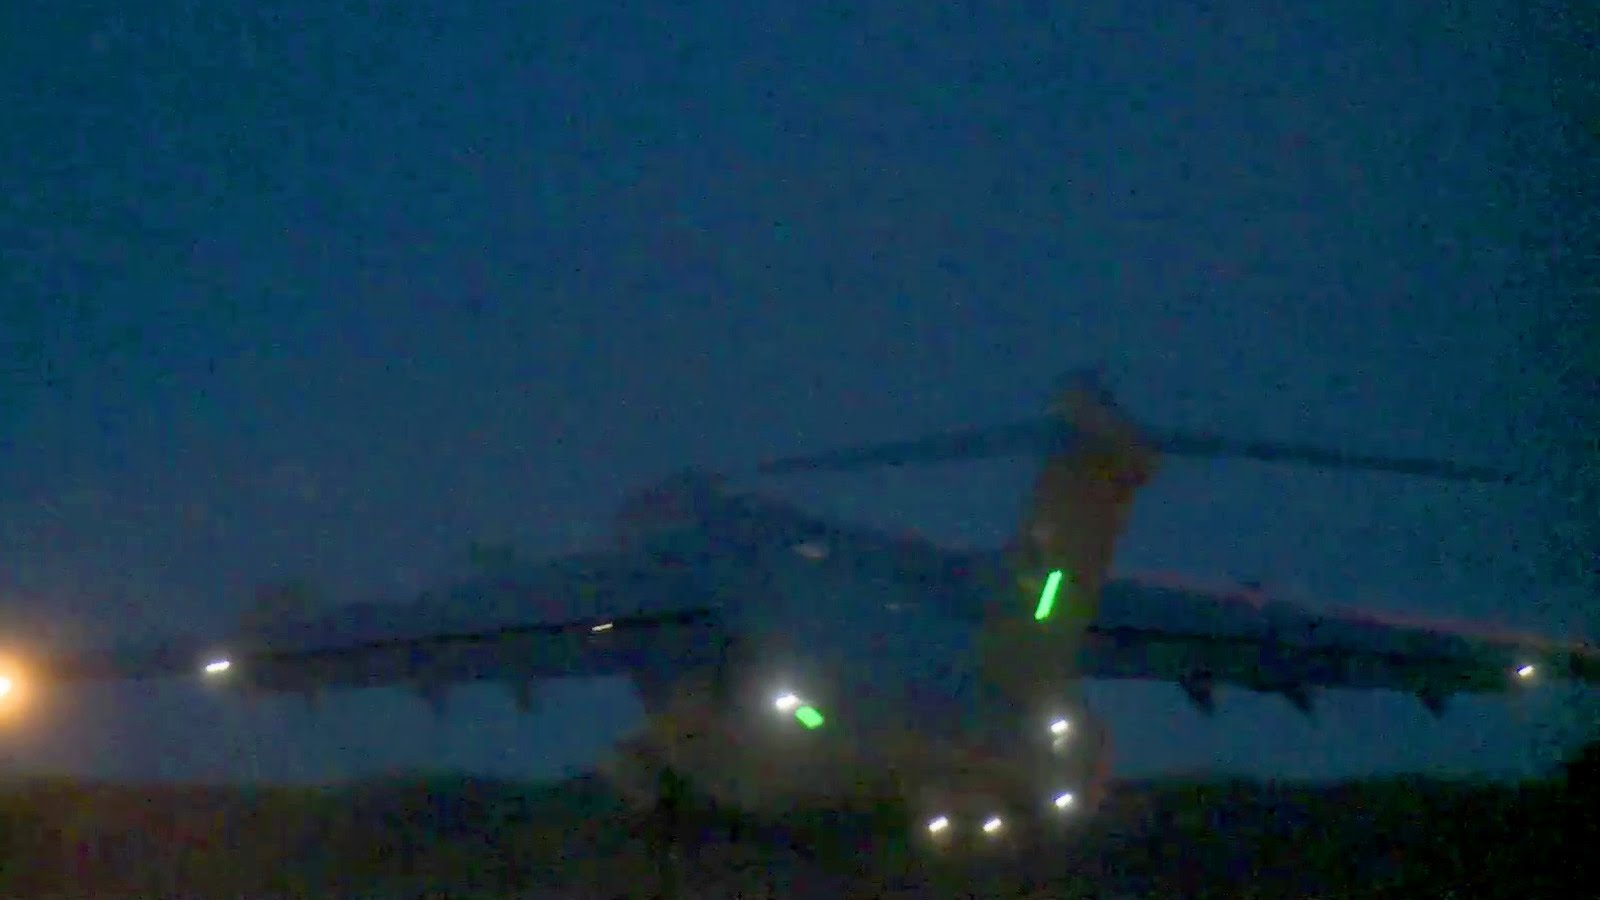 C-17 Night Takeoff